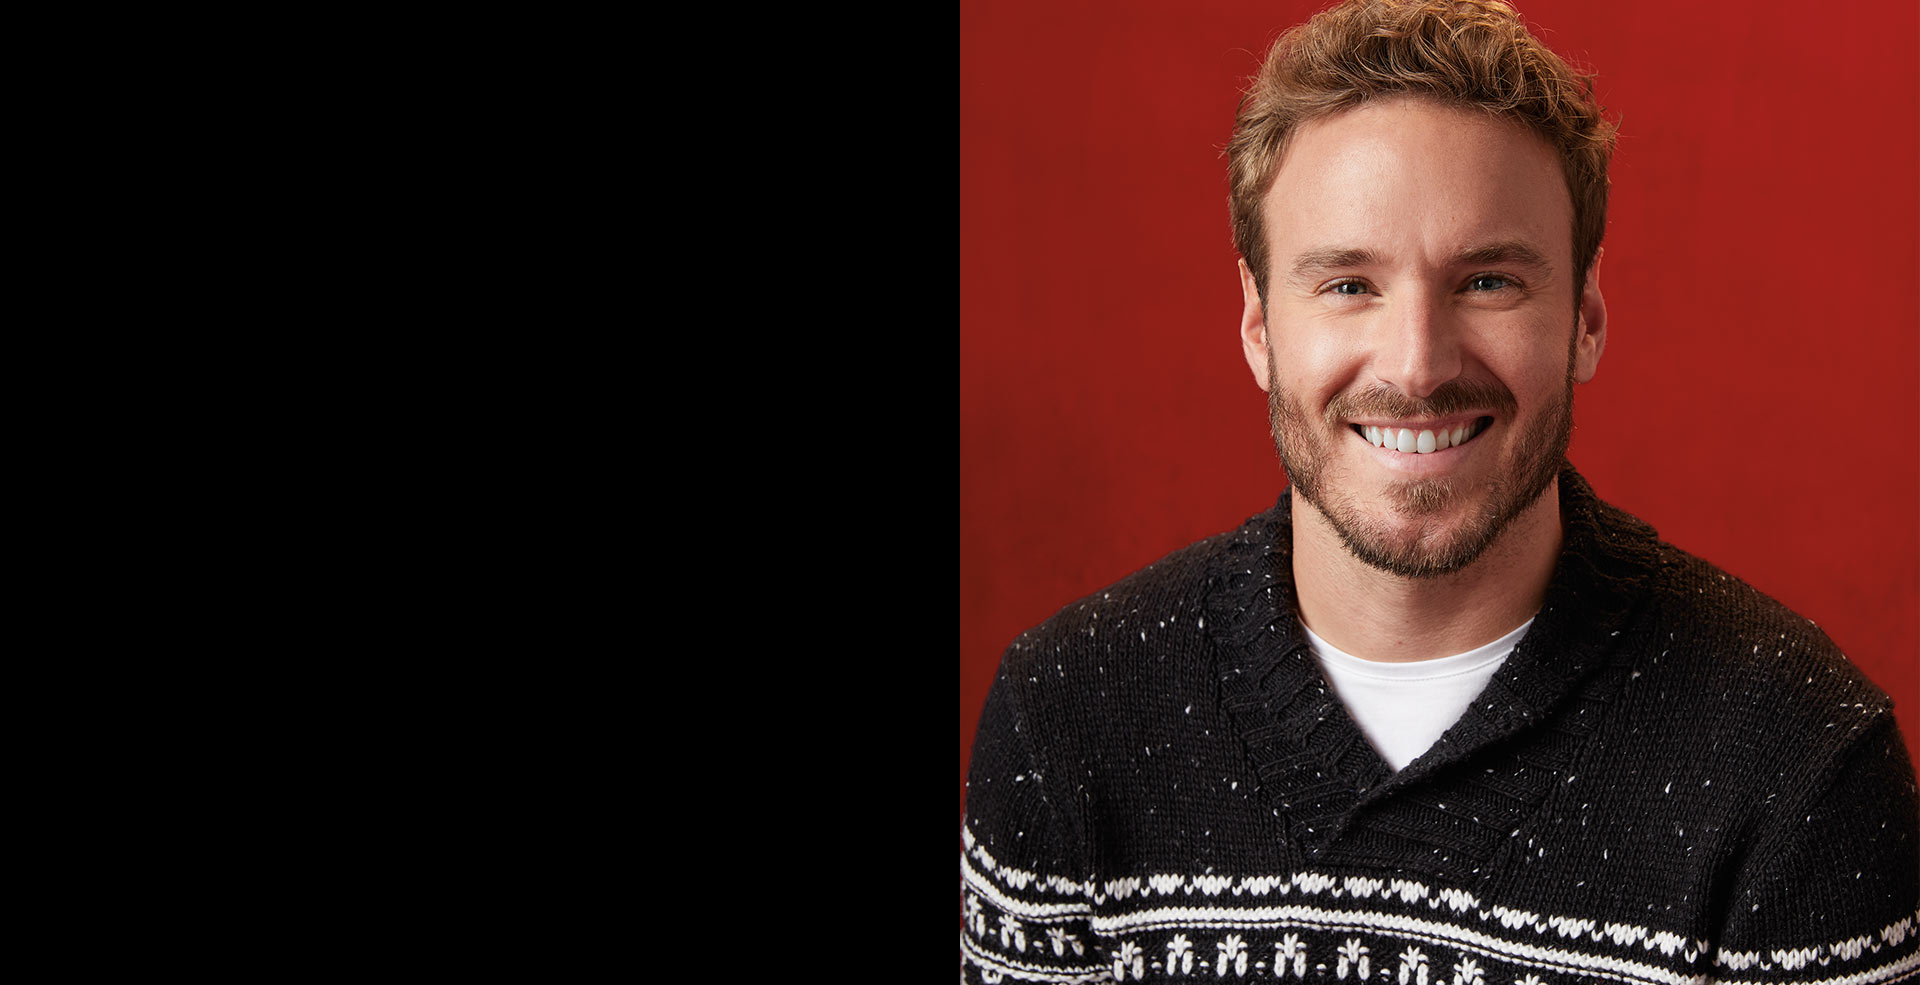 Men smiling wearing a knitted sweater from RW & Co